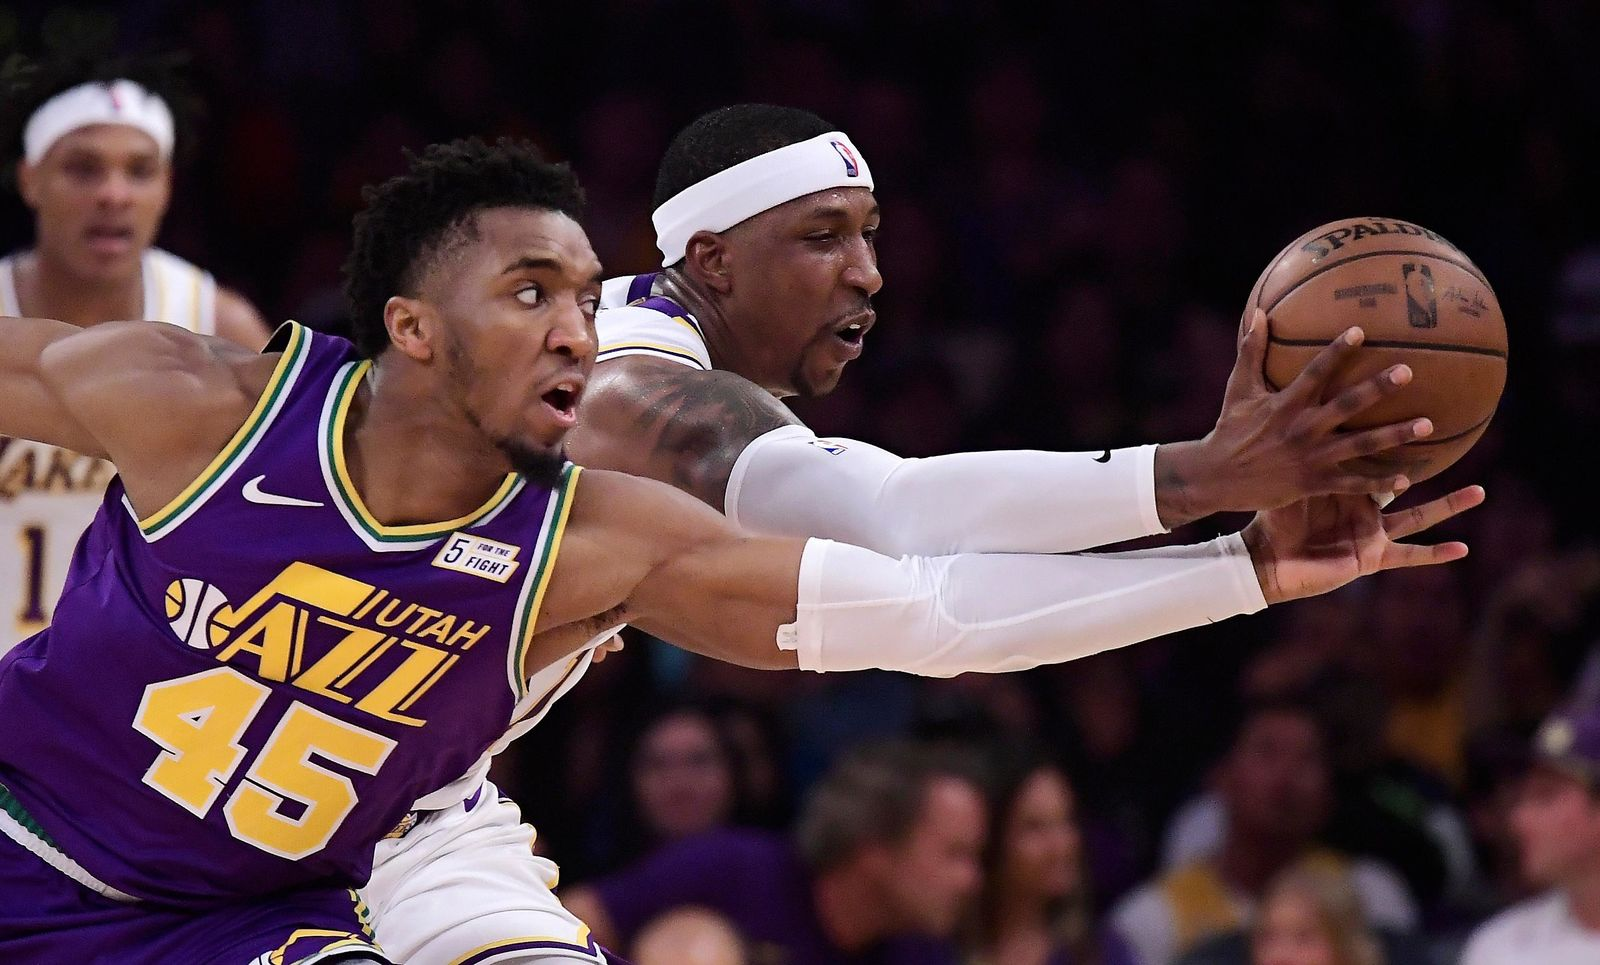 Utah Jazz guard Donovan Mitchell, left, and Los Angeles Lakers guard Kentavious Caldwell-Pope go after a loose ball during the first half of an NBA basketball game Sunday, April 7, 2019, in Los Angeles. (AP Photo/Mark J. Terrill)